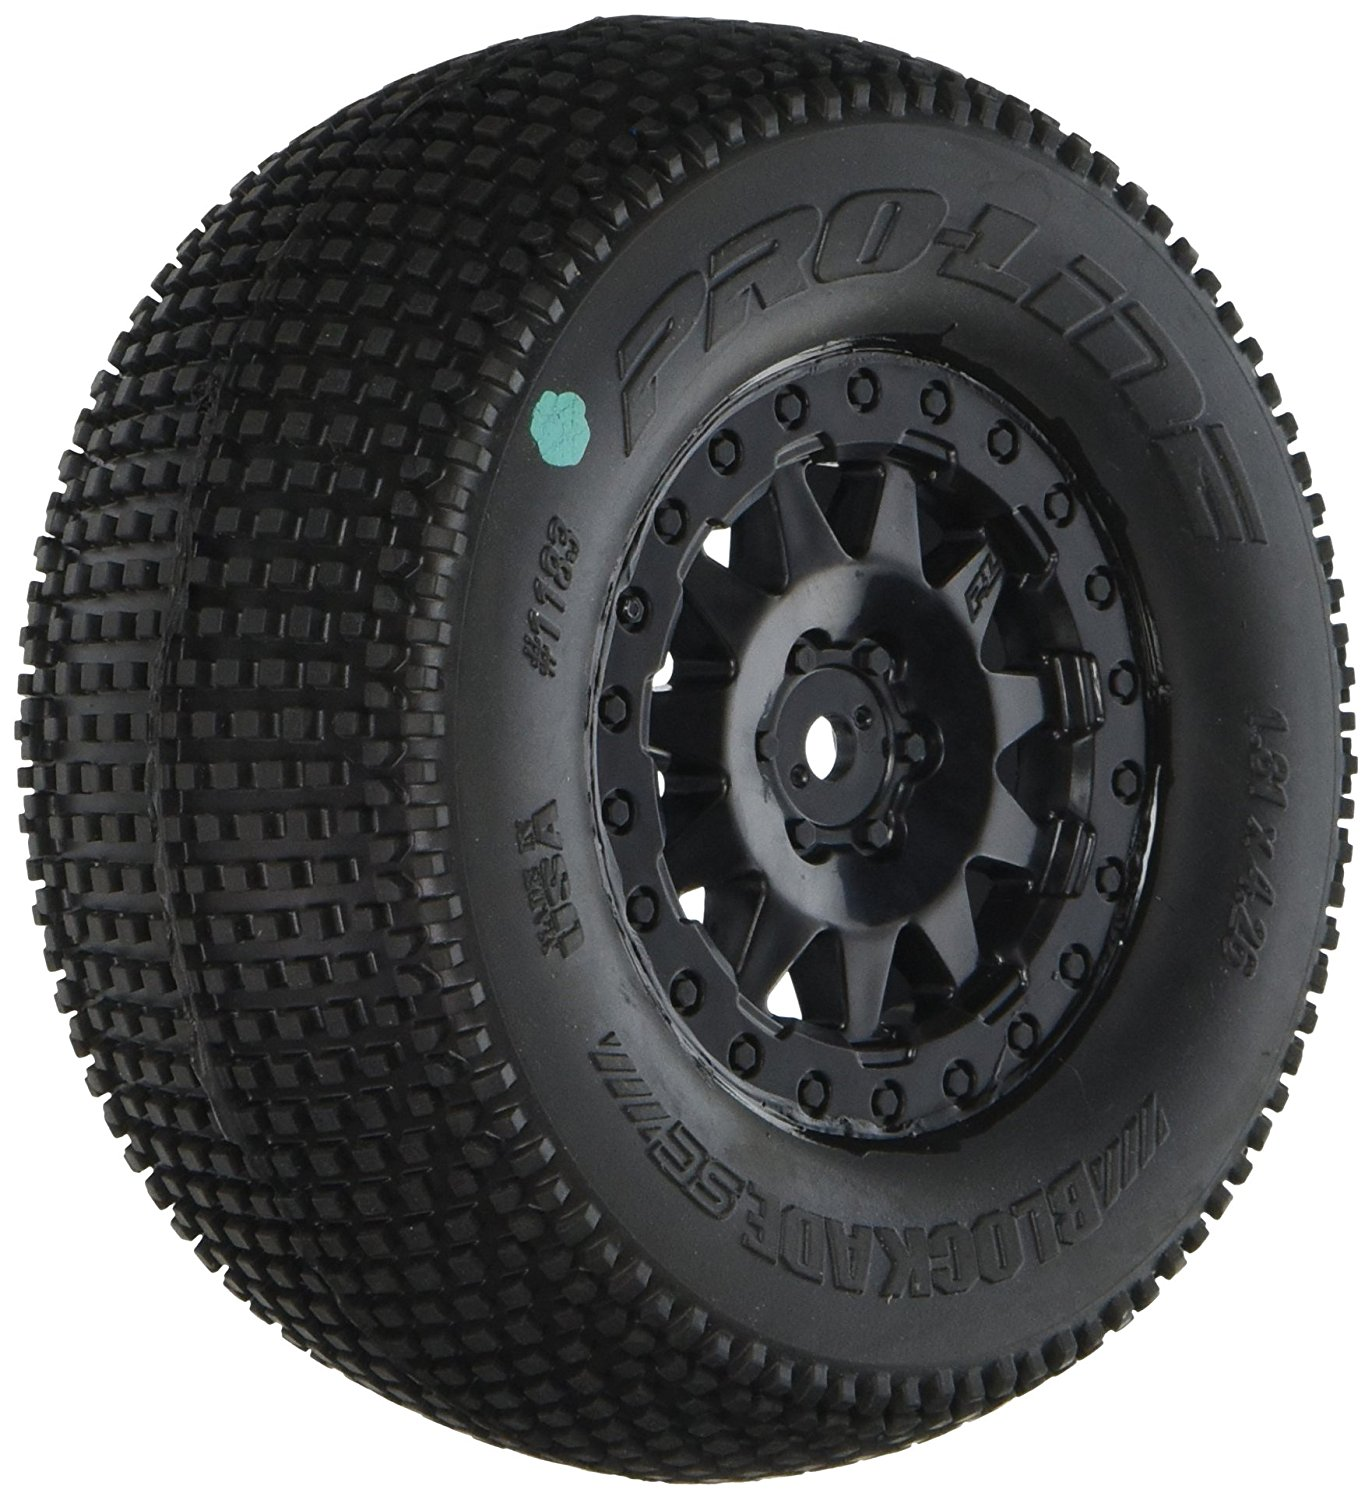 118325 Blockade SC 2.2/3.0 M3 Soft Tires On F-11 Wheels for SCTE4X4SC10Rs 2Wd/SC10 4X4, Black, Revolutionary long lasting tread pattern generates exceptional.., By PROLINE